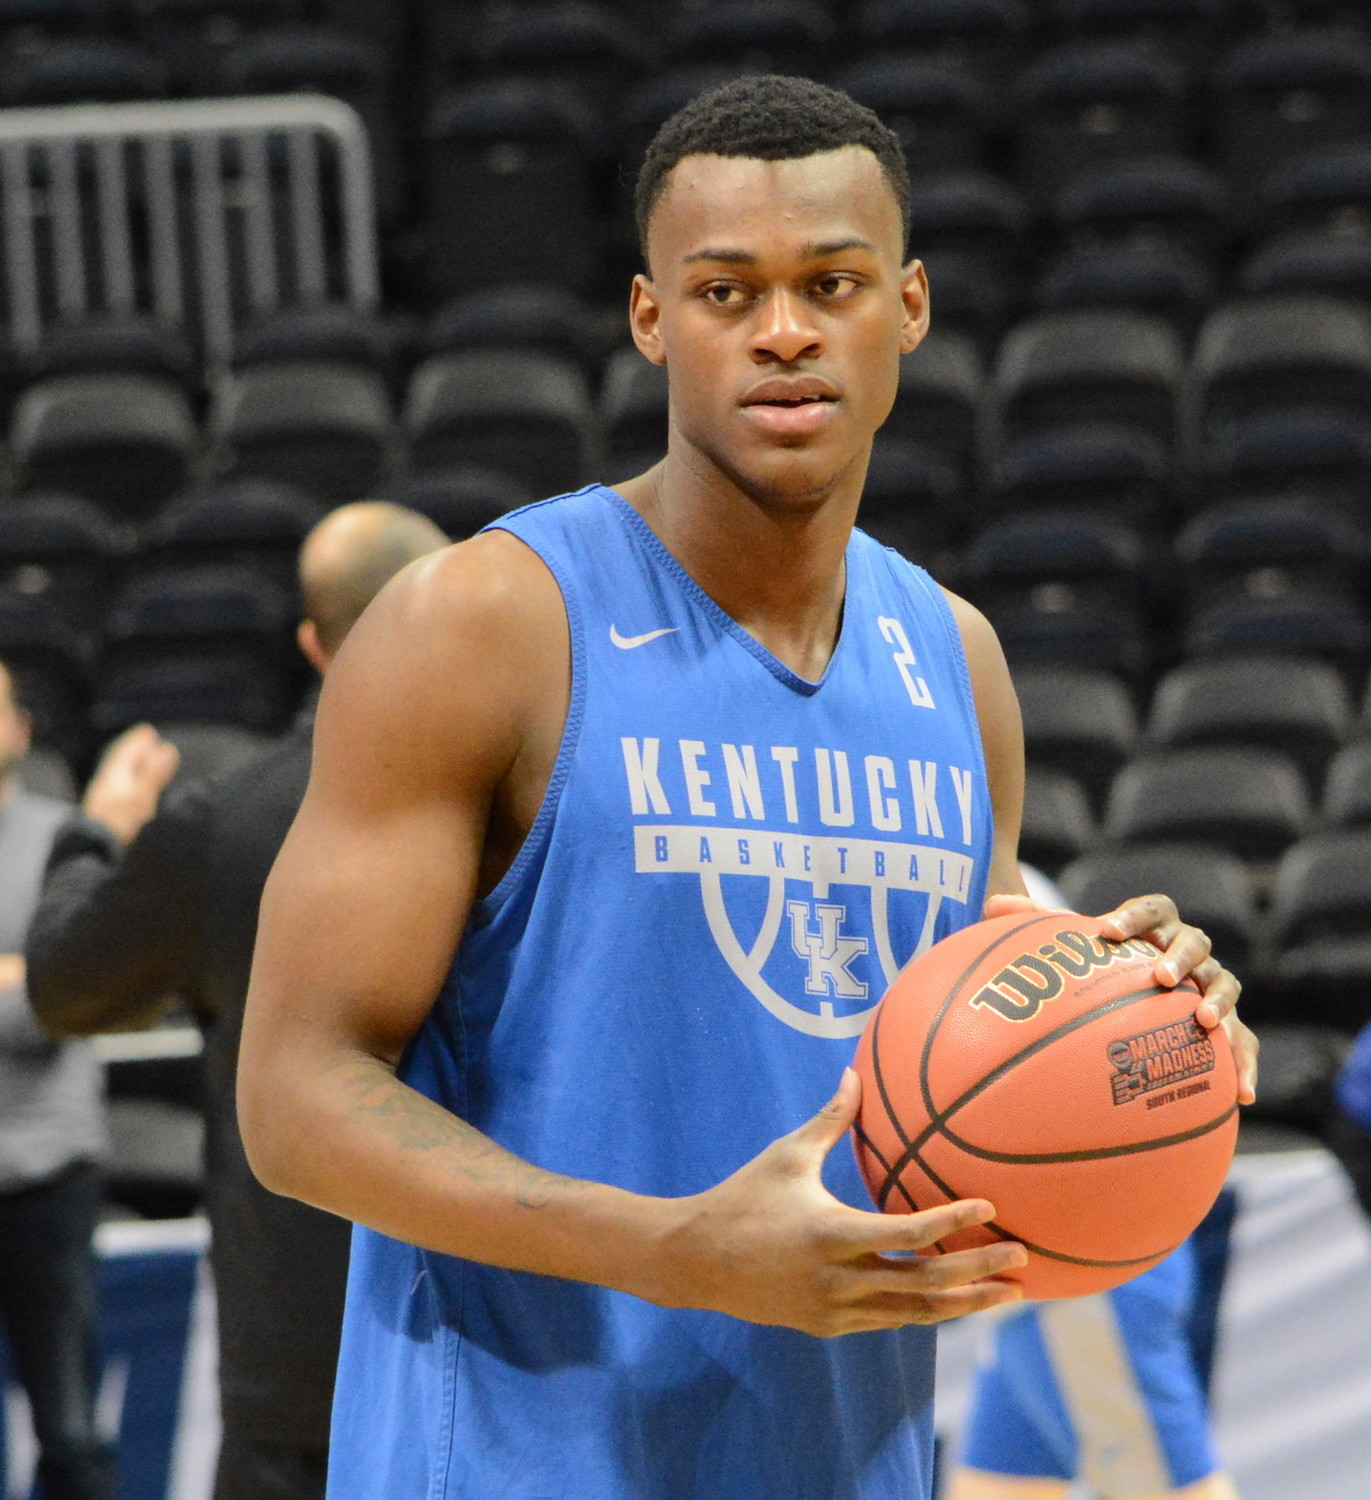 Kentucky freshman Jarred Vanderbilt has withdrawn from the NBA Combine and won't participate in the five-day event this week. (Kentucky Today/Keith Taylor)